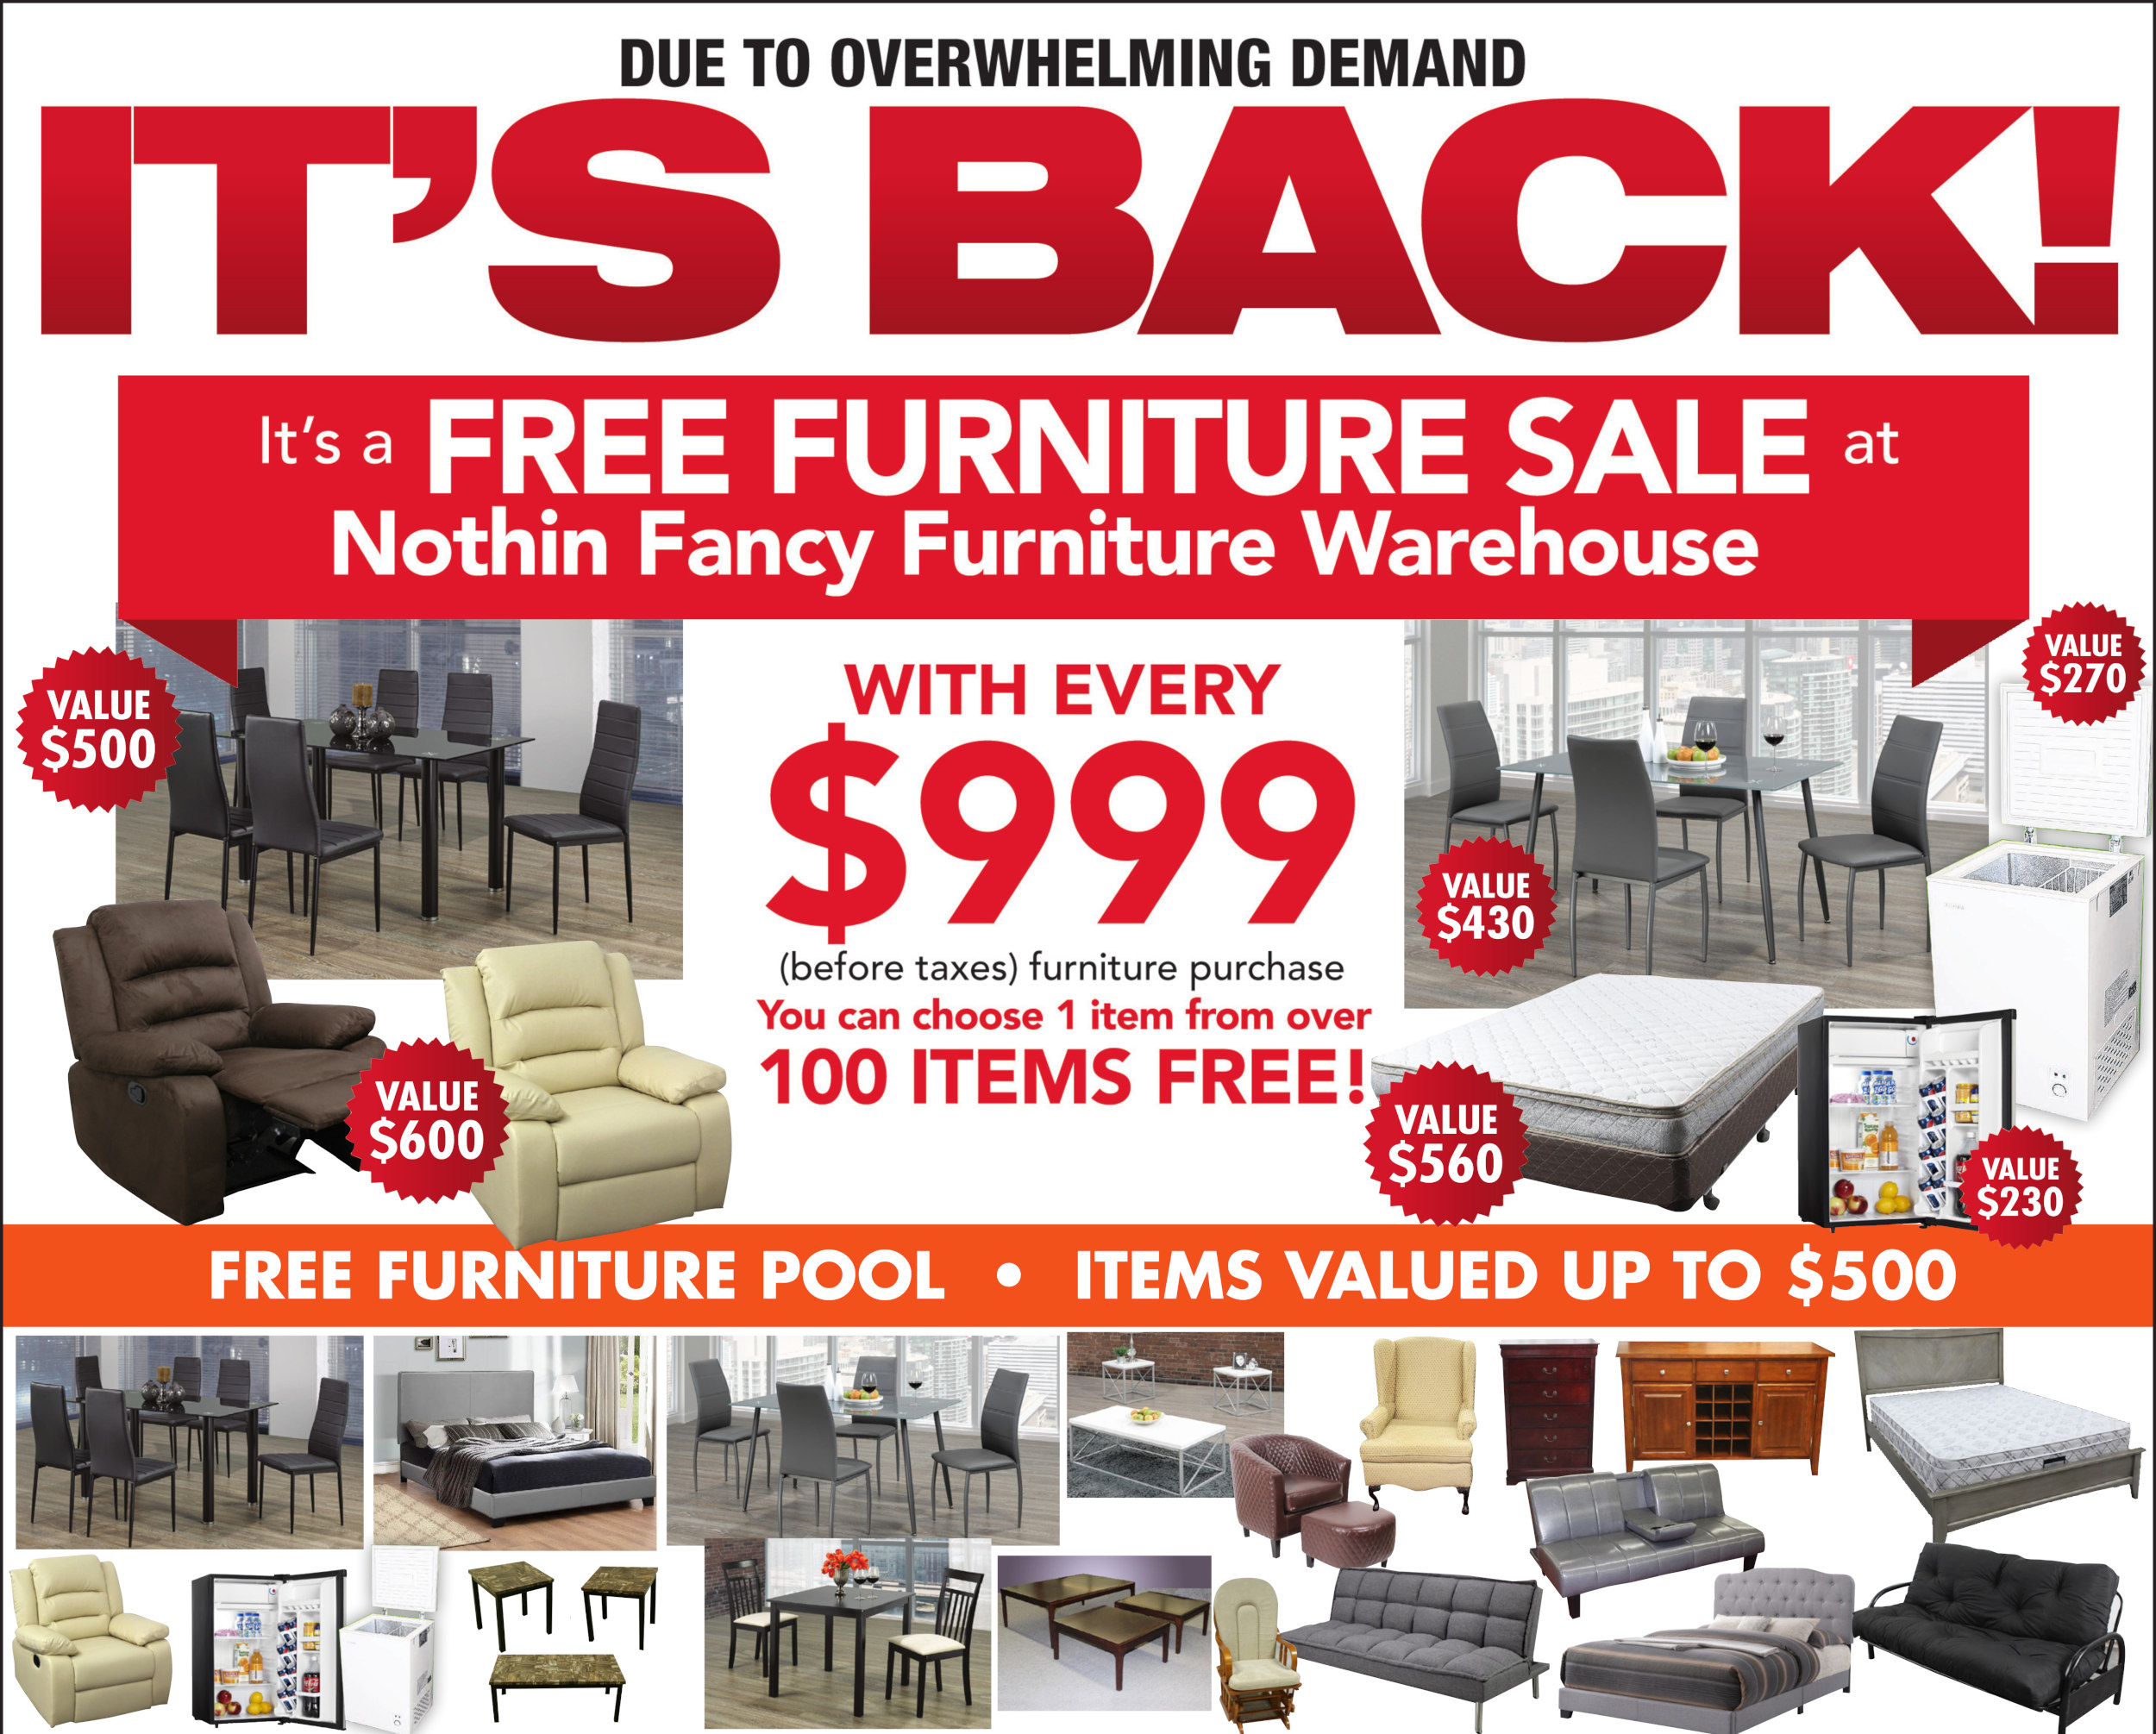 Meubles Furniture Warehouse Nothin Fancy Furniture Warehouse Factory Direct Discounts